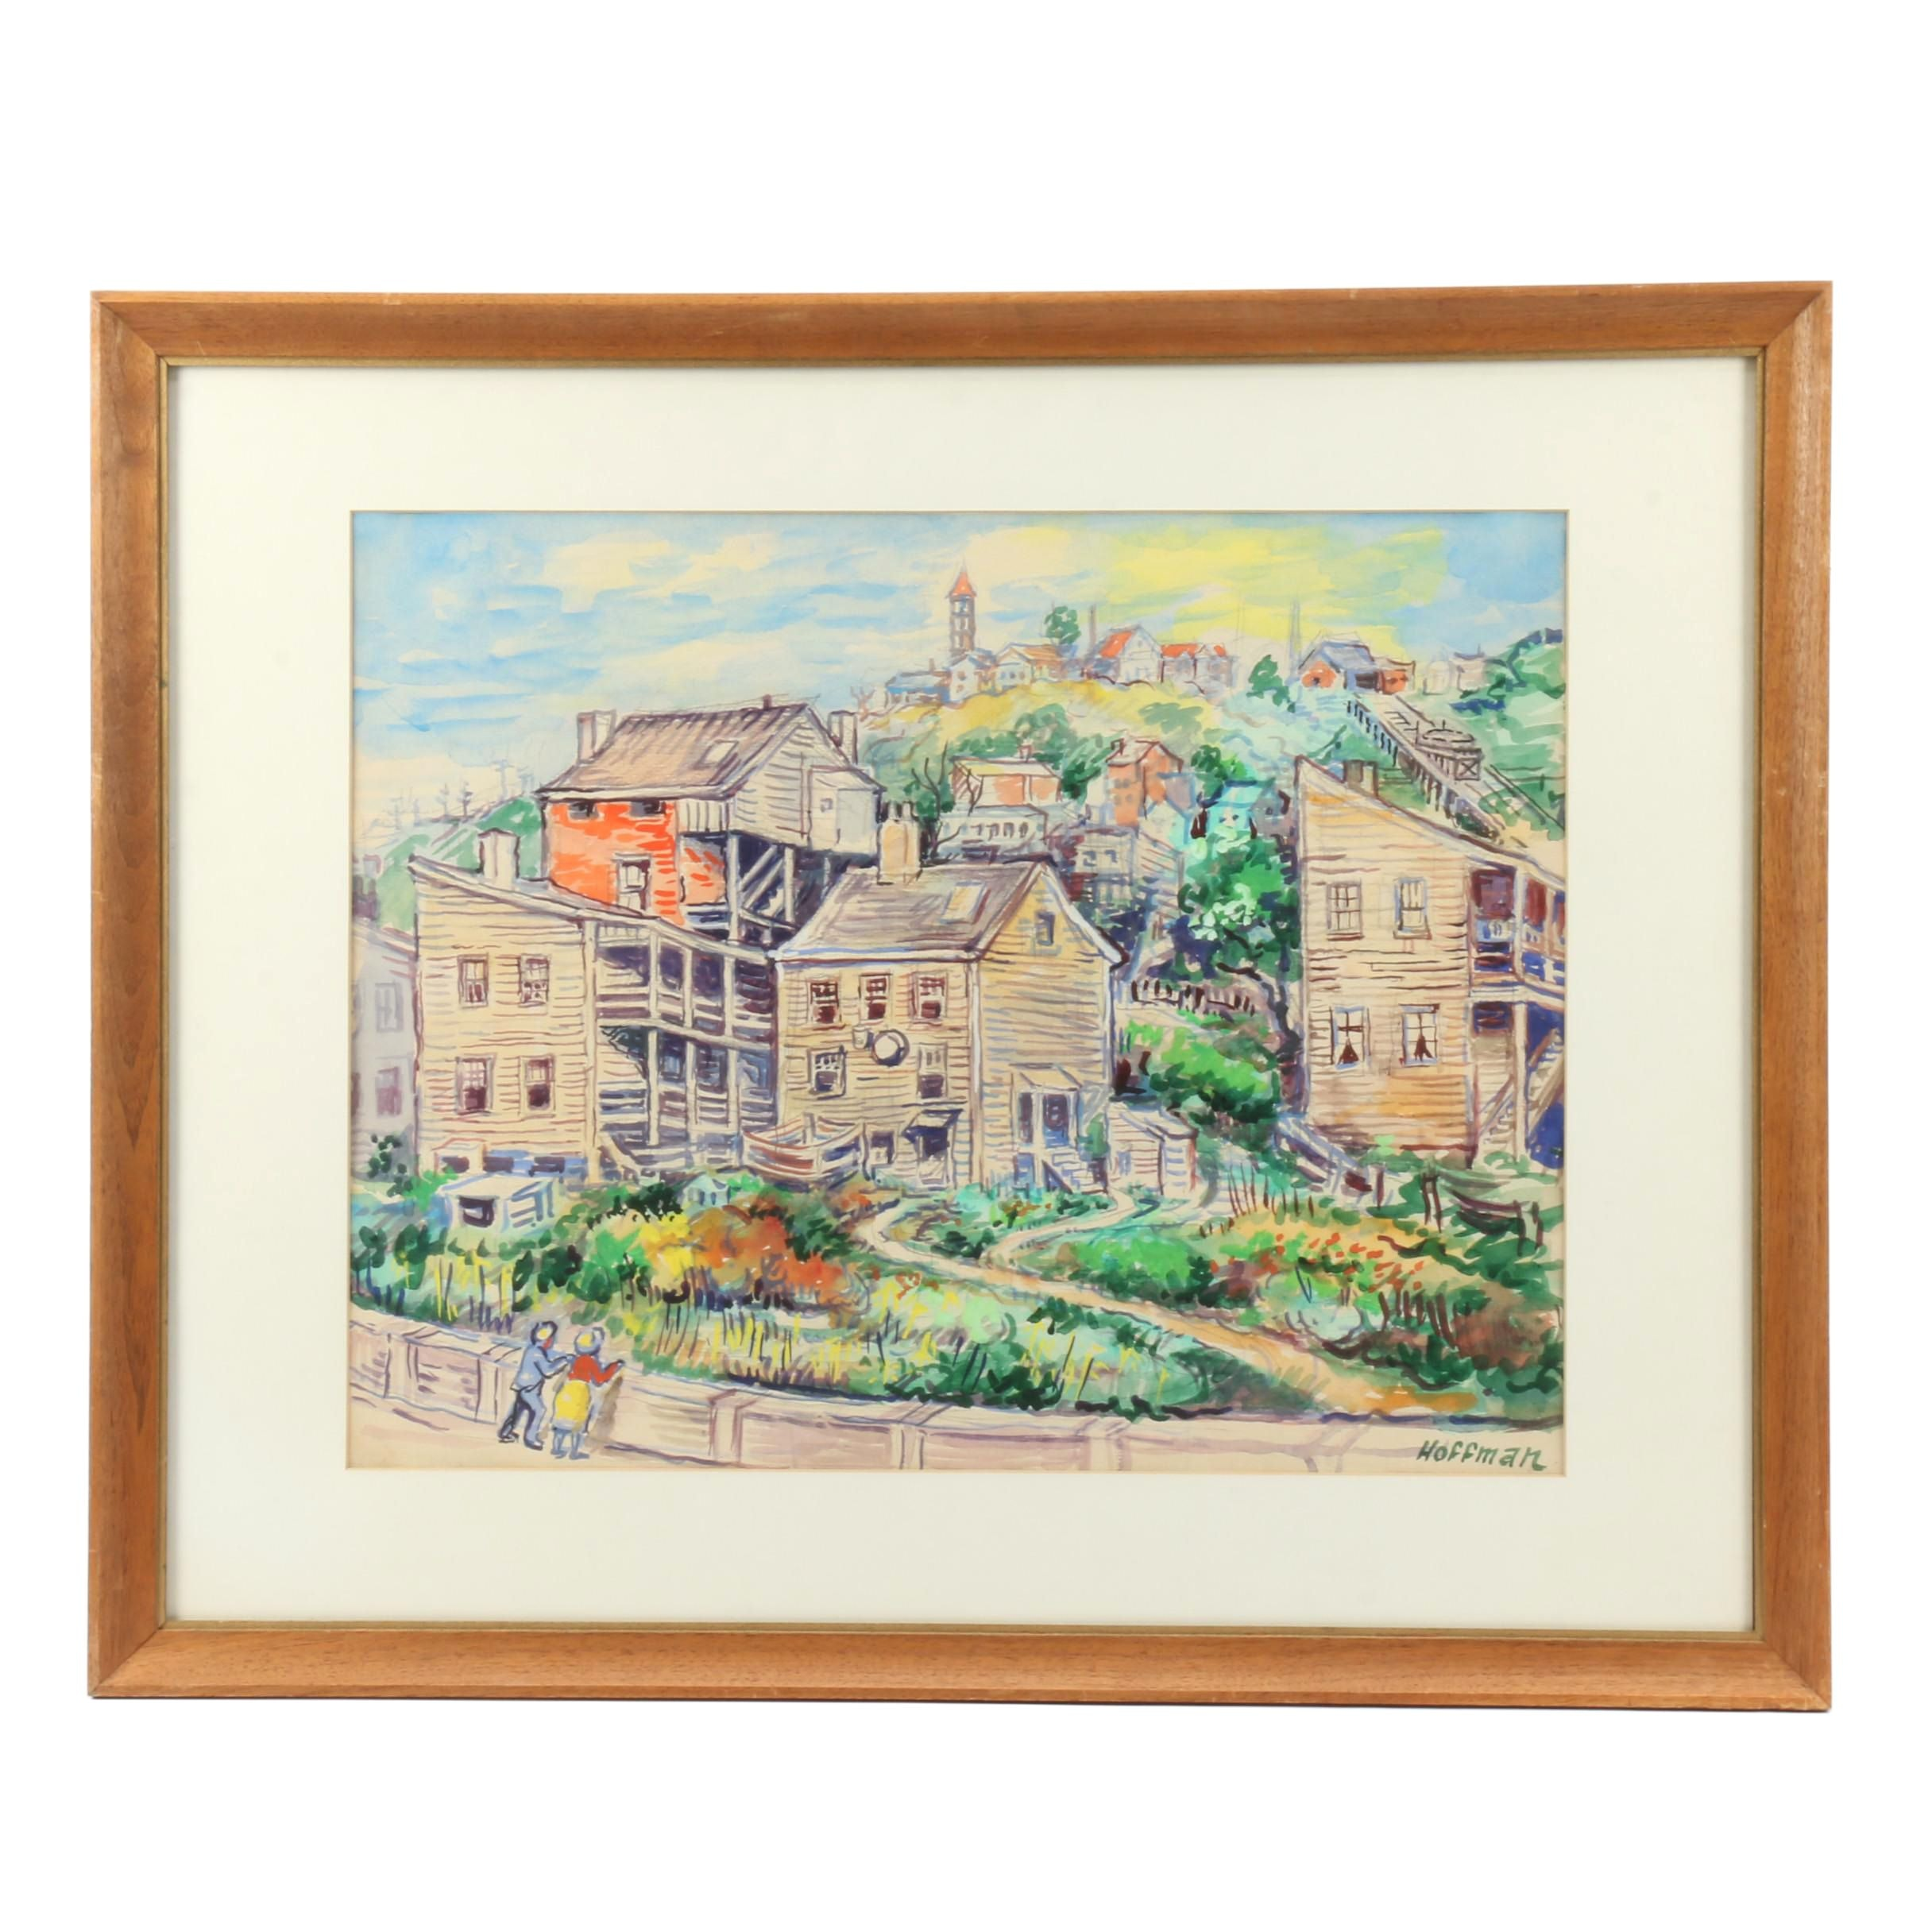 Hoffman Watercolor Painting of Buildings with Incline